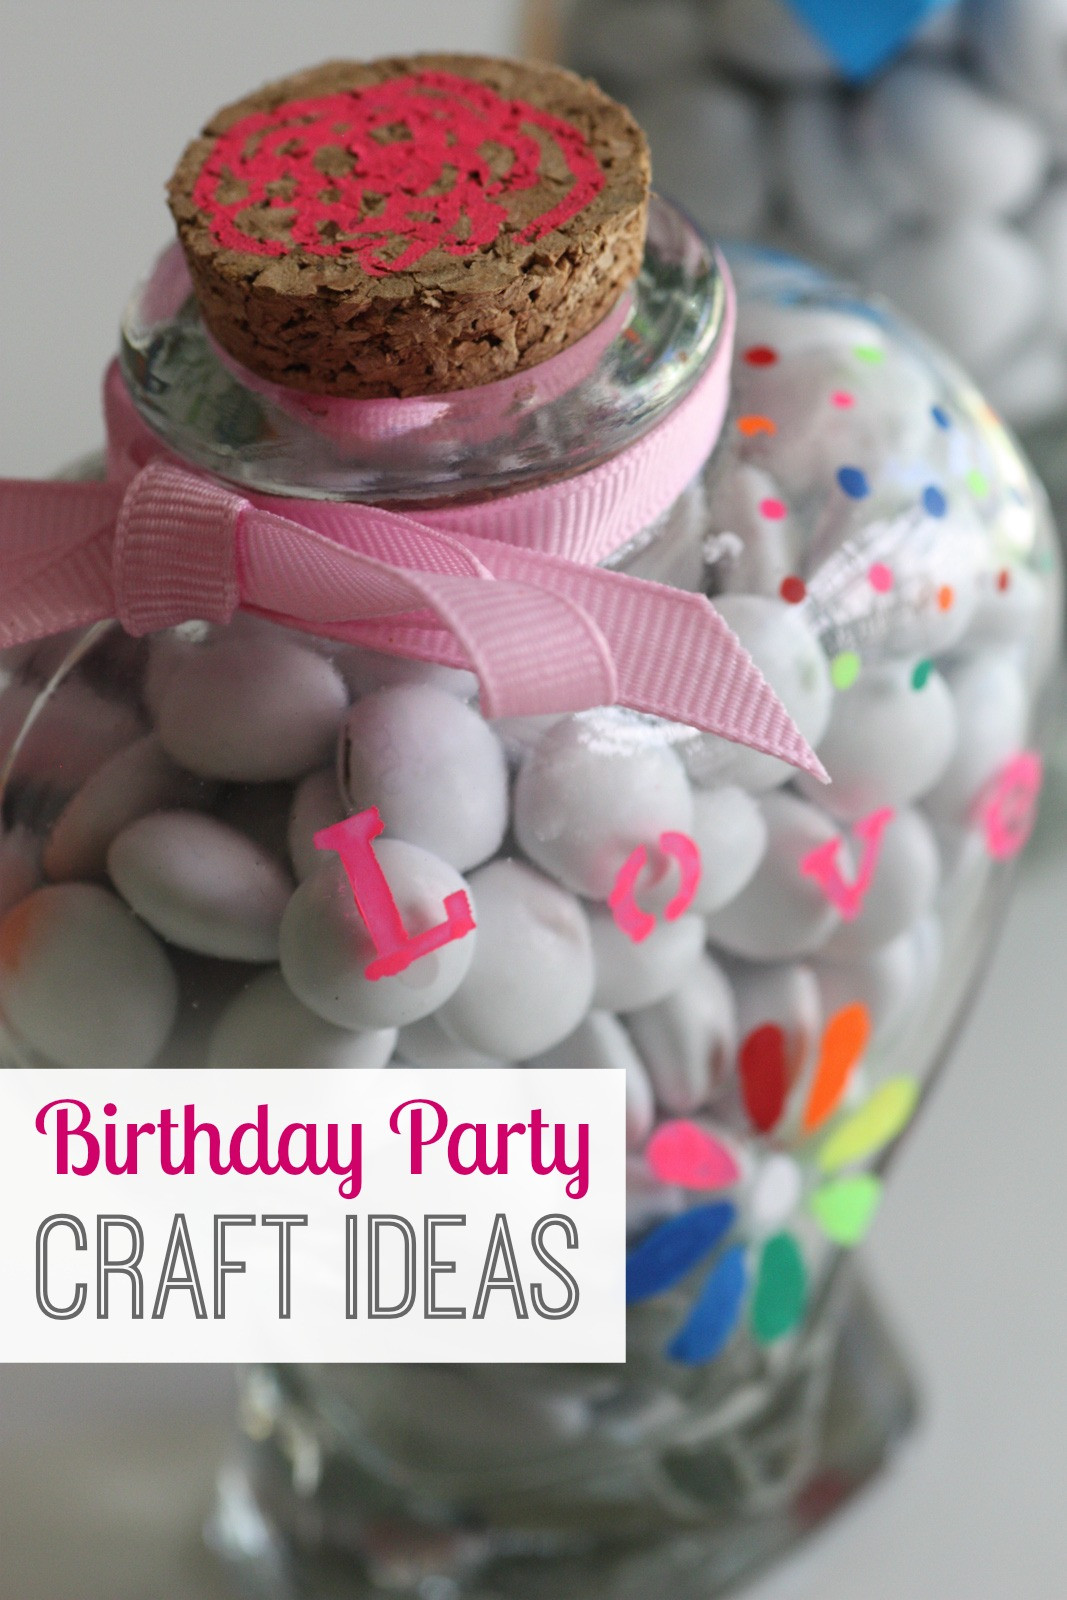 Birthday Party Crafts  Easy Birthday Party Craft Ideas